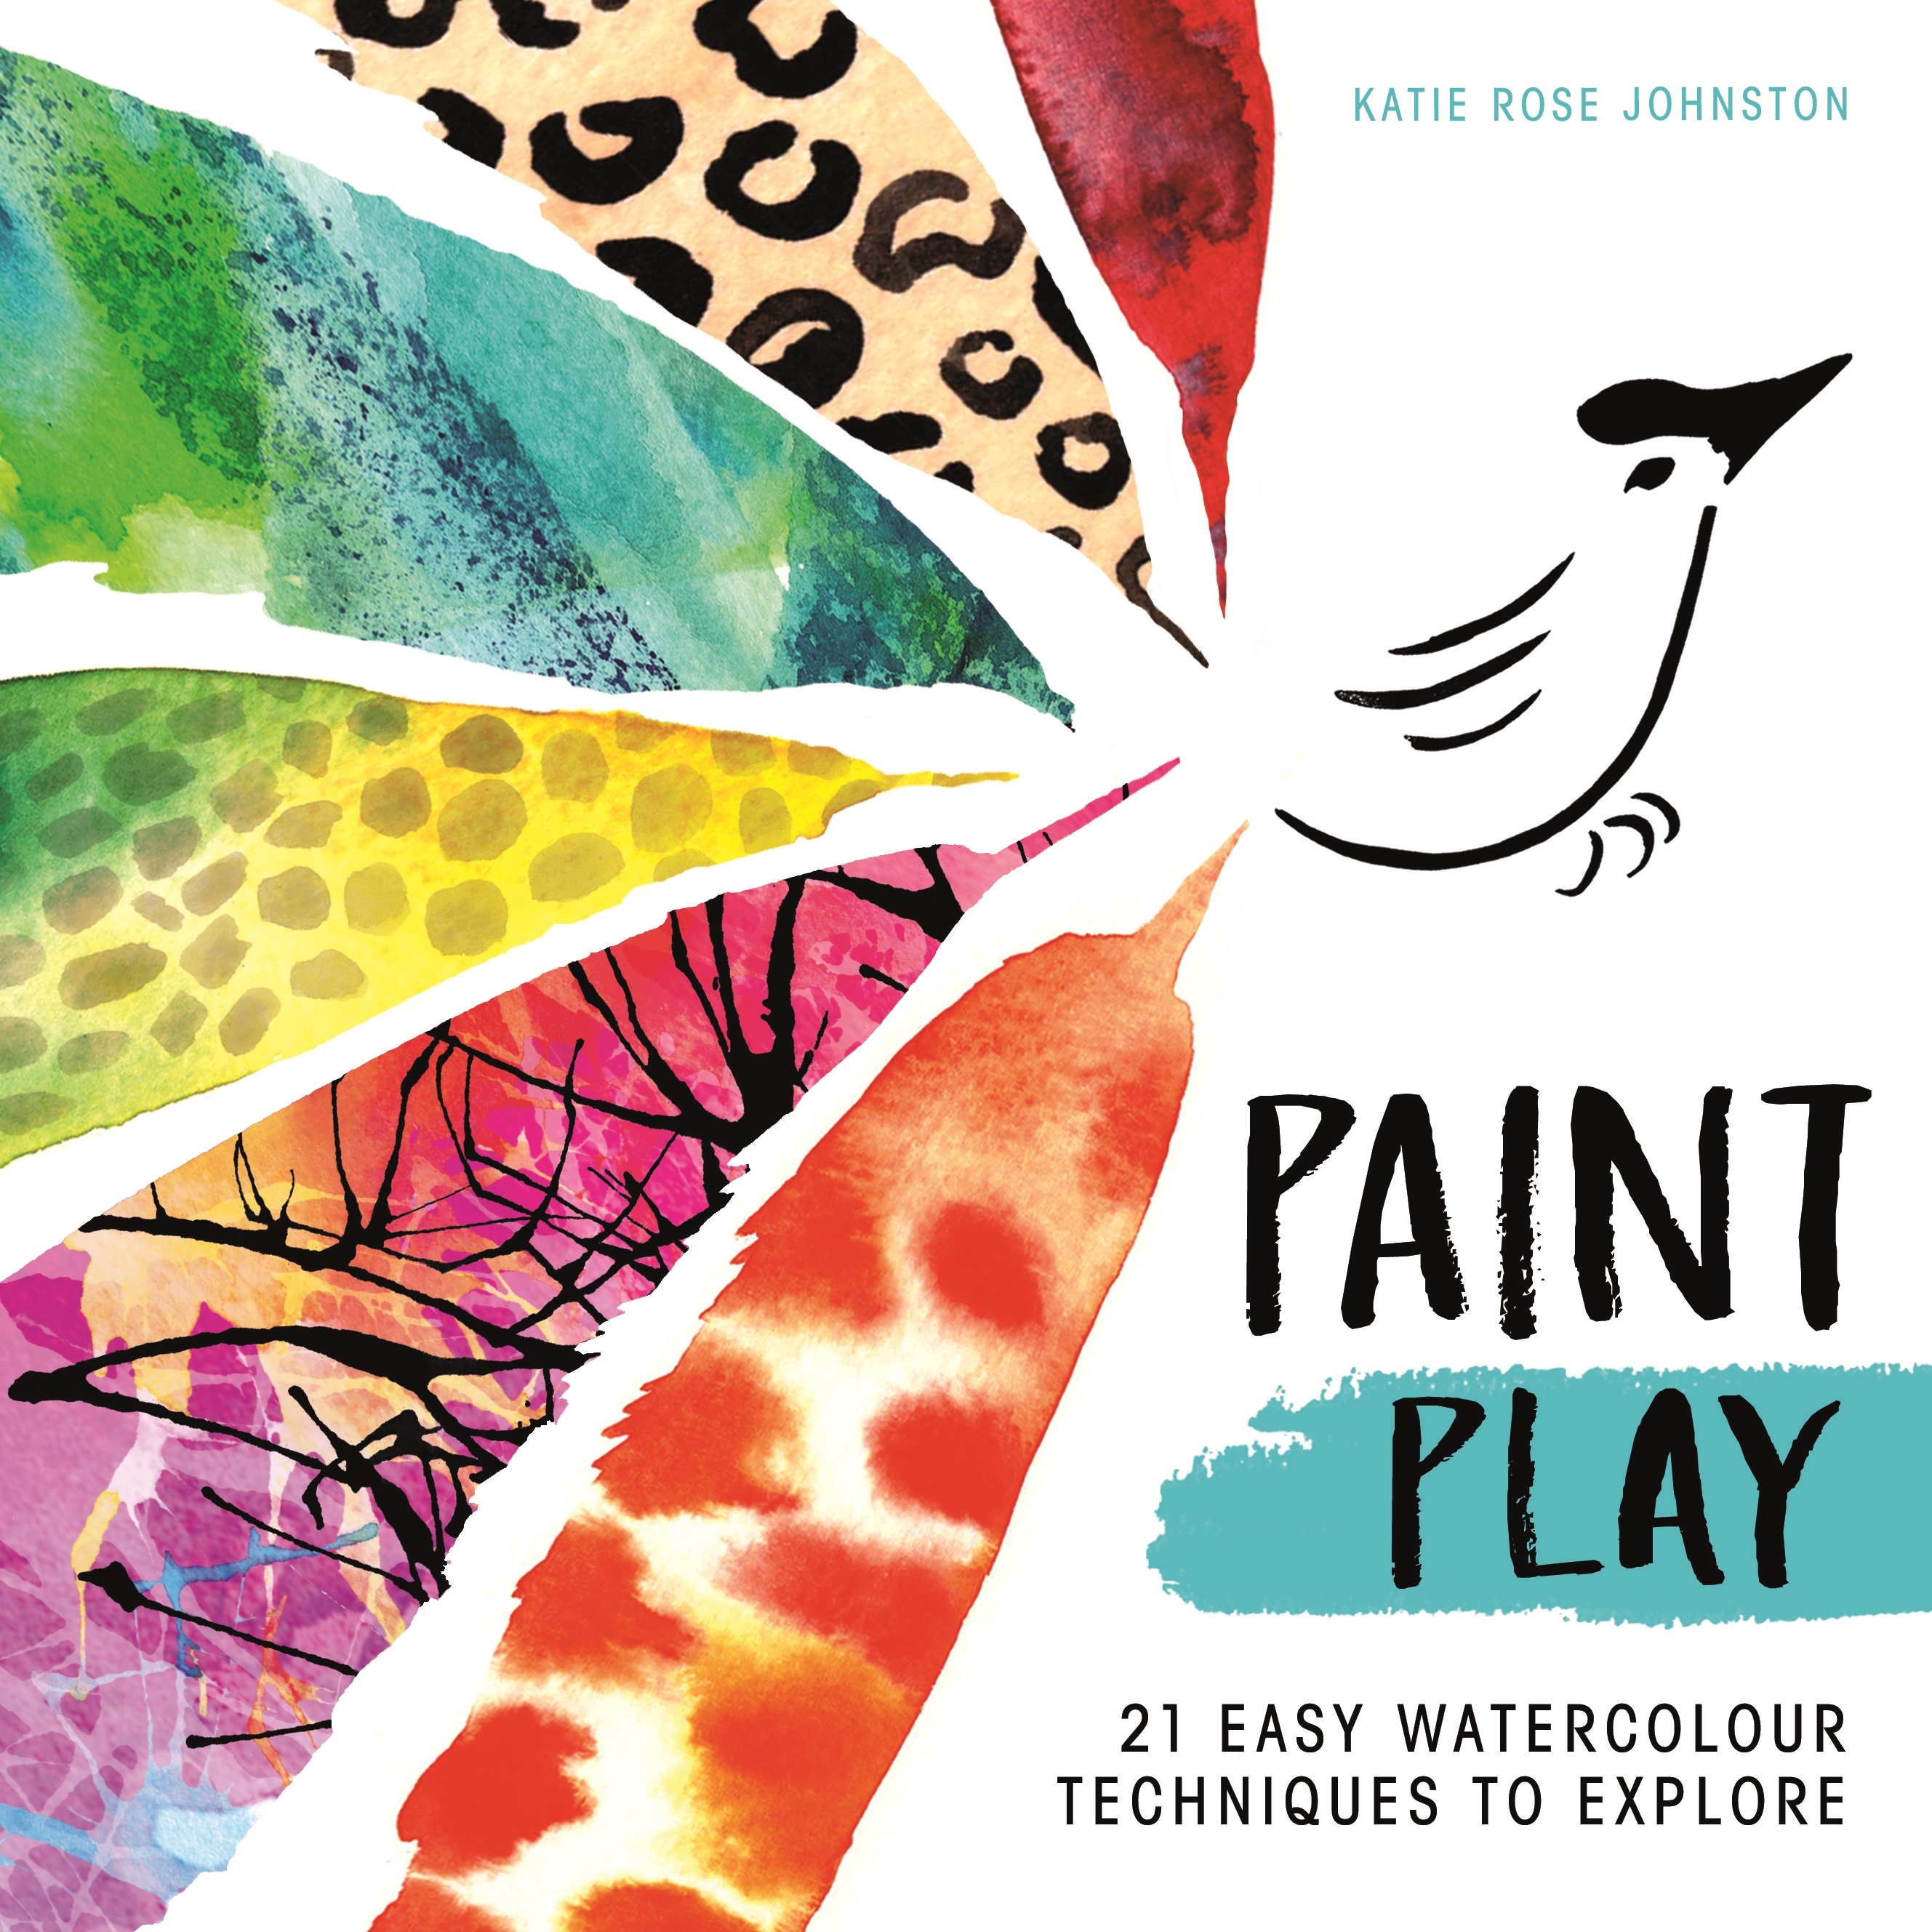 FREE Paint Play projects paper craft download